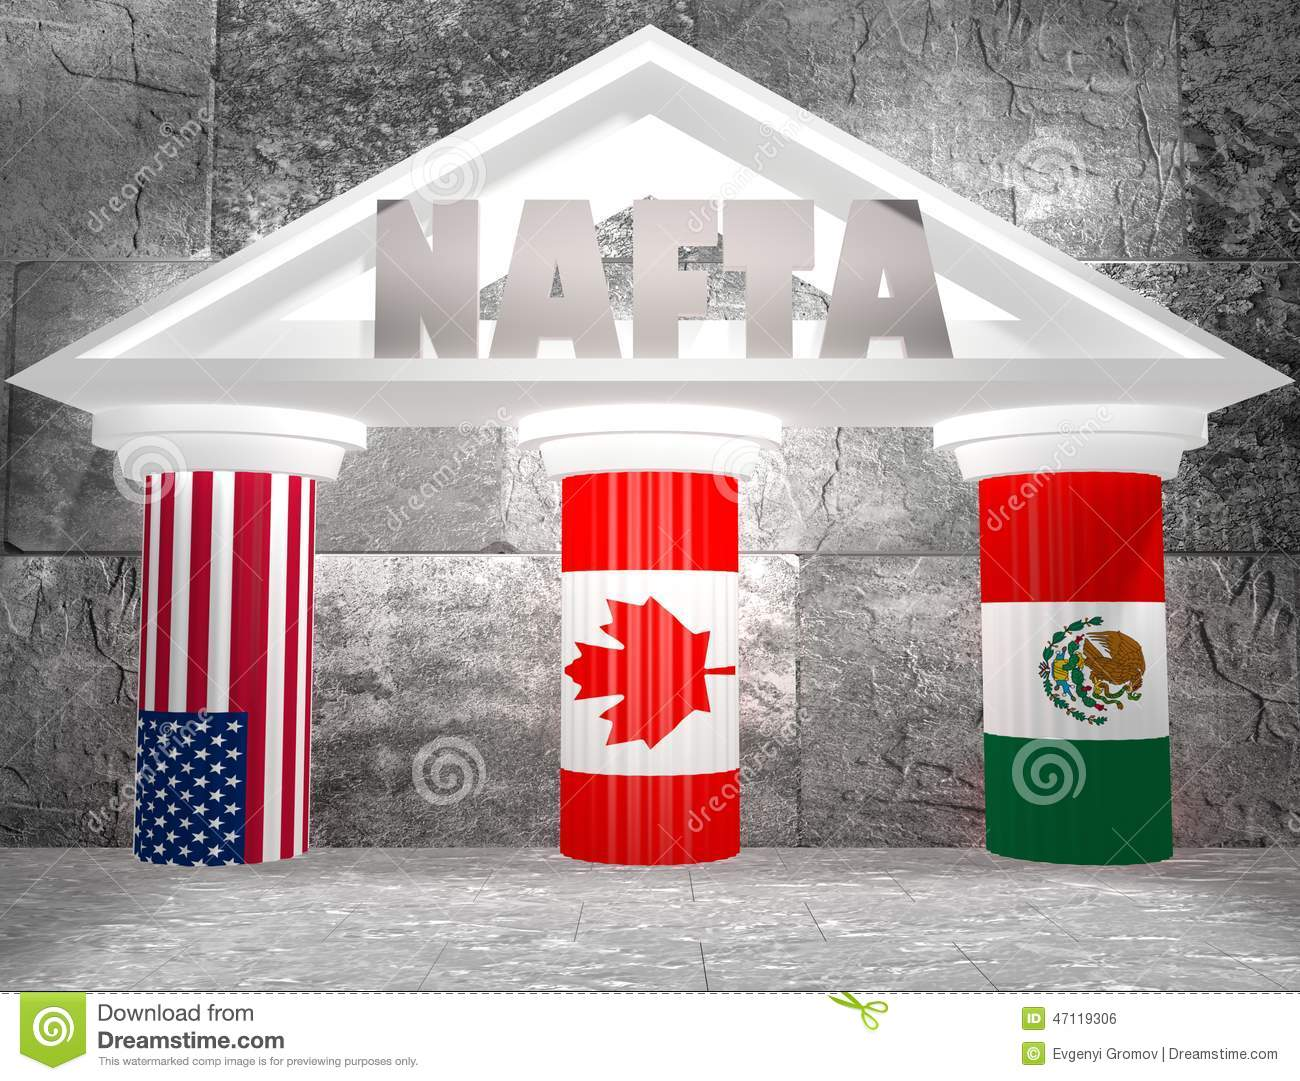 North American Free Trade Agreement - NAFTA